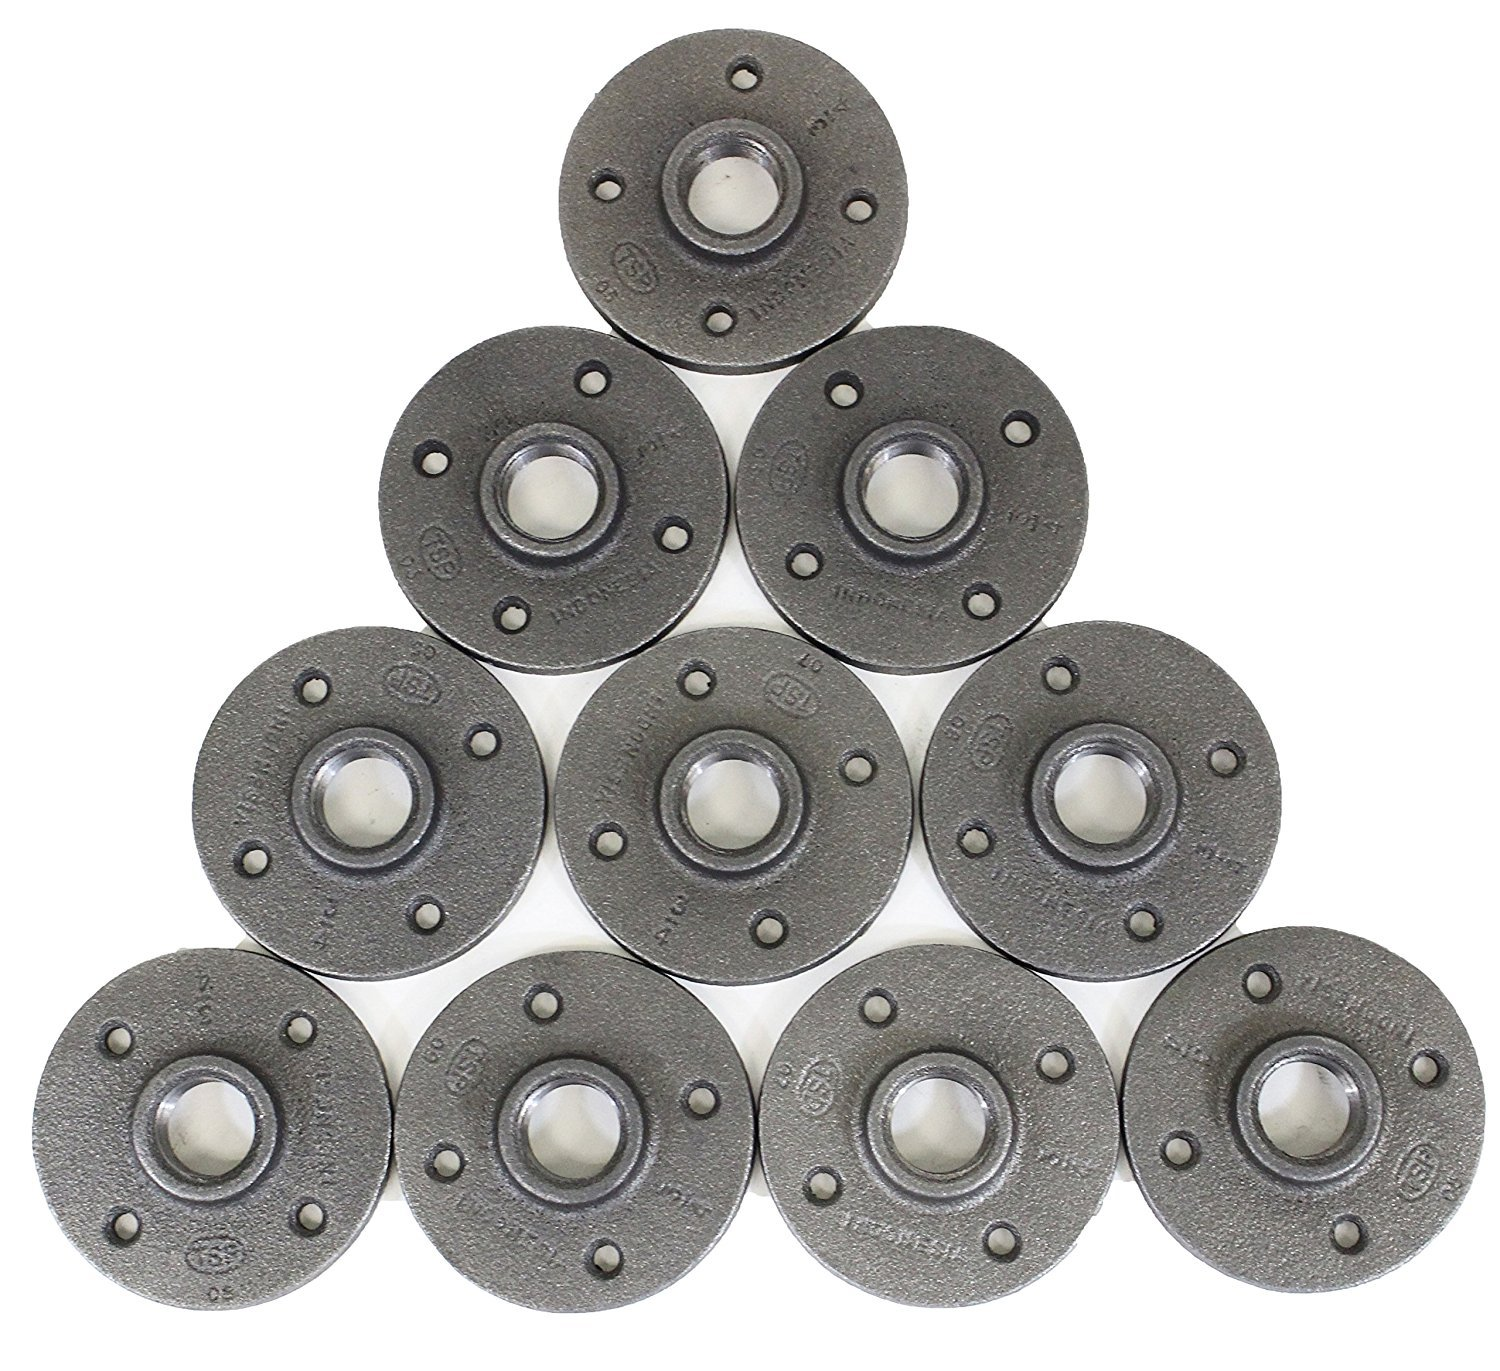 TSP Floor Flange Industrial Pipe 1/2-Inch Iron Flanges-1/2 DIY Furniture Decor 10 Pack Malleable Threaded Plumber Fitting-Perfect for Vintage Steampunk Lamps Shelving Plumbing, 1/2'', Black, Count by TSP